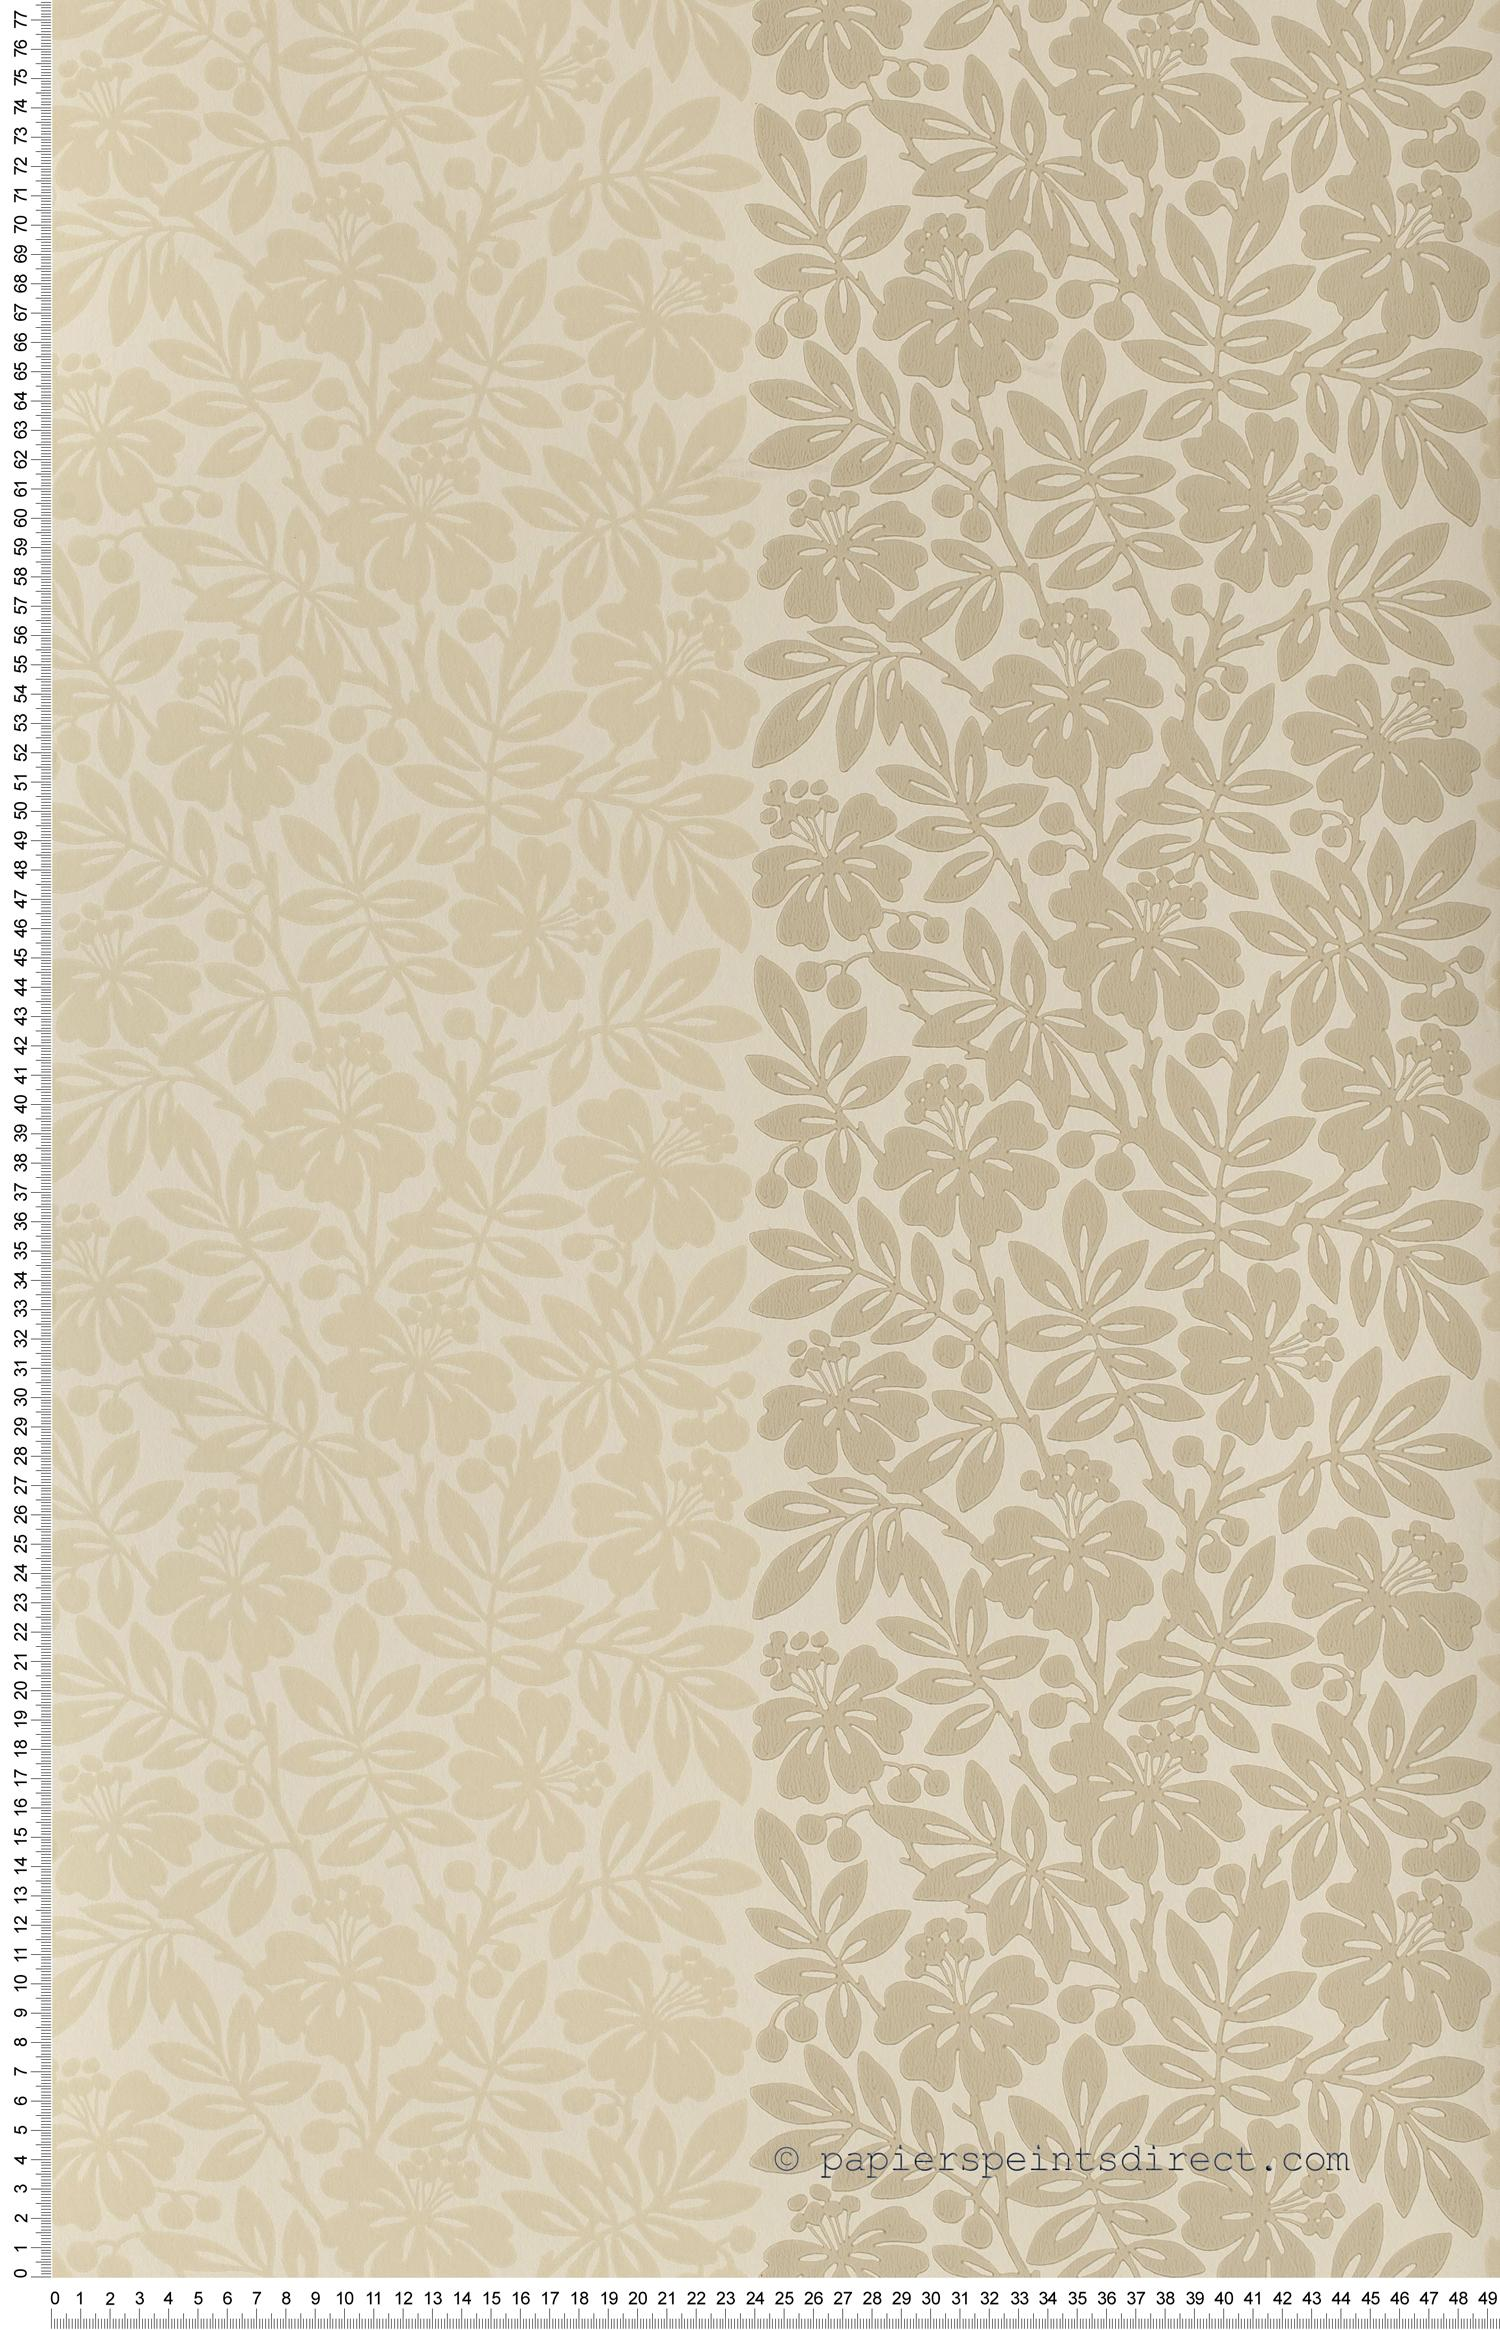 Carlisle street Solstice - Painted Papers de Little Greene